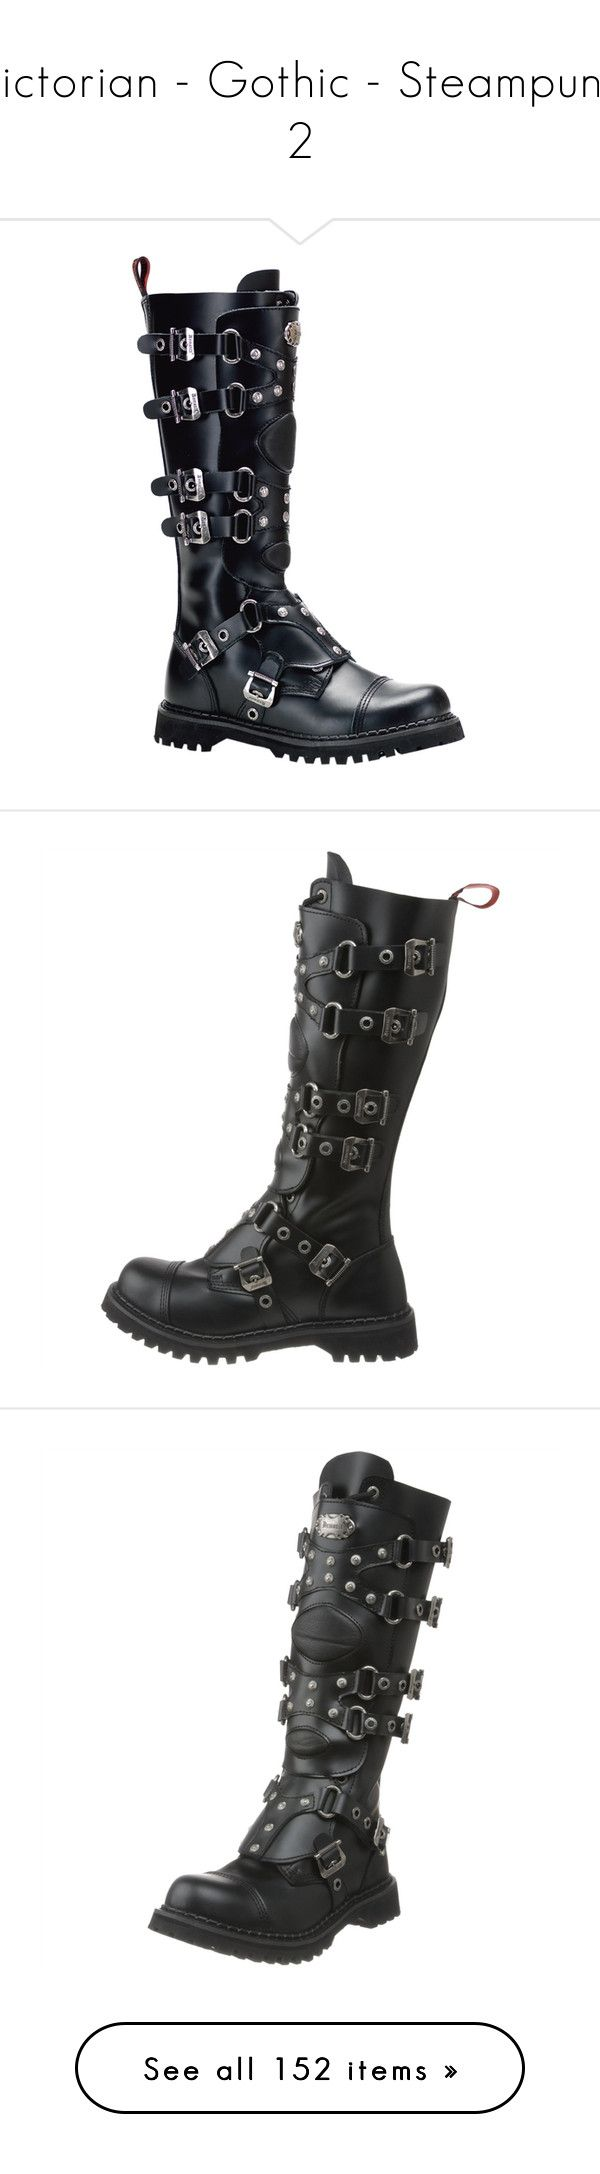 """""""Victorian - Gothic - Steampunk 2"""" by selene-cinzia ❤ liked on Polyvore featuring shoes, boots, botas, knee high leather boots, black gothic boots, buckle boots, goth boots, demonia boots, gothic boots and leather knee boots"""